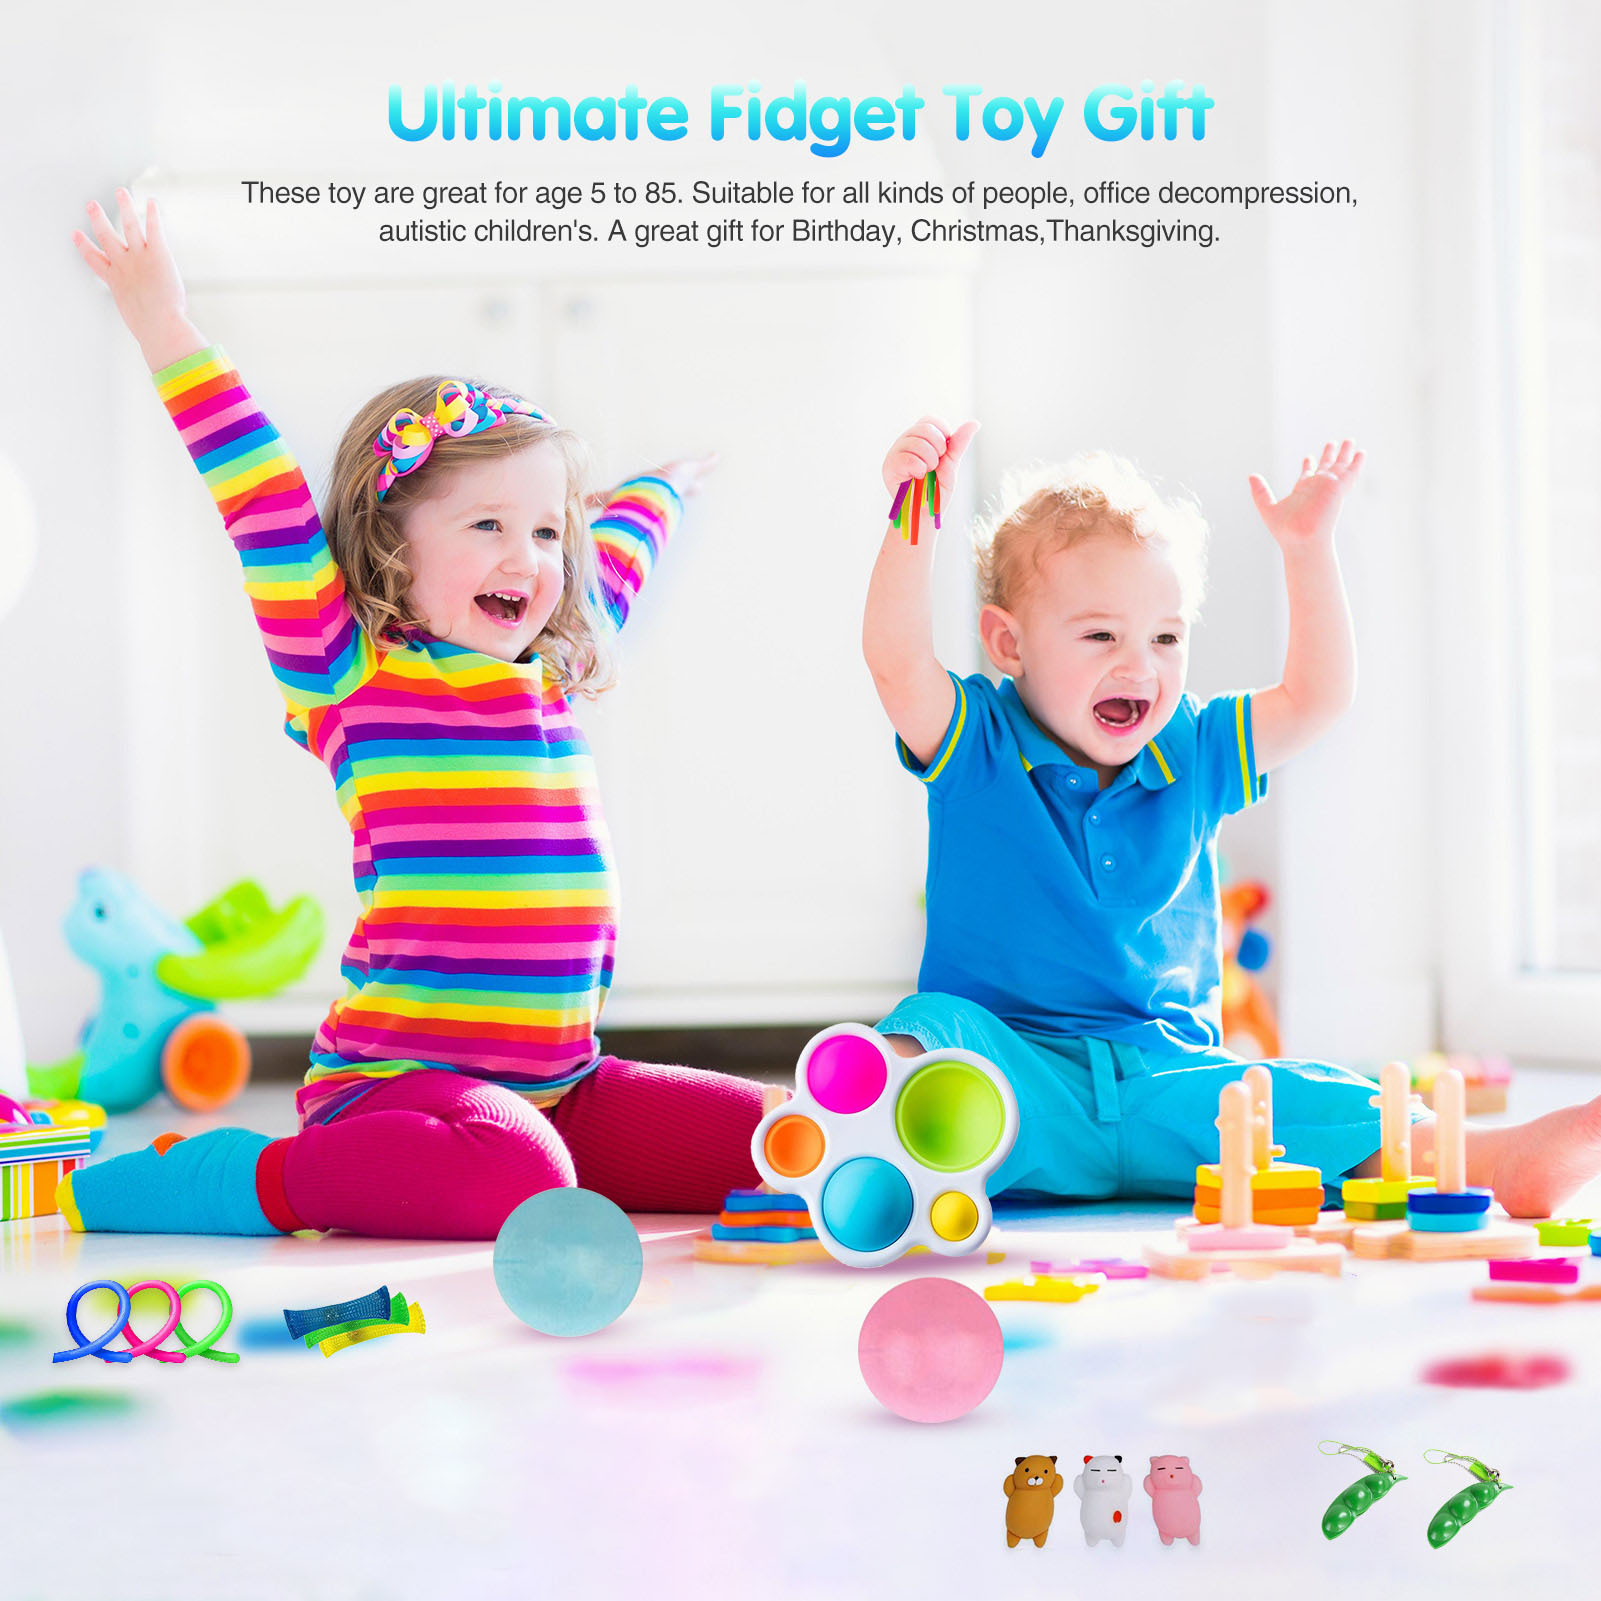 26 Pack Fidget Sensory Toy Set Stress Relief Toys Autism Anxiety Relief Needtoys Stress Pop Bubble Fidget Toys For Kids Adults enlarge